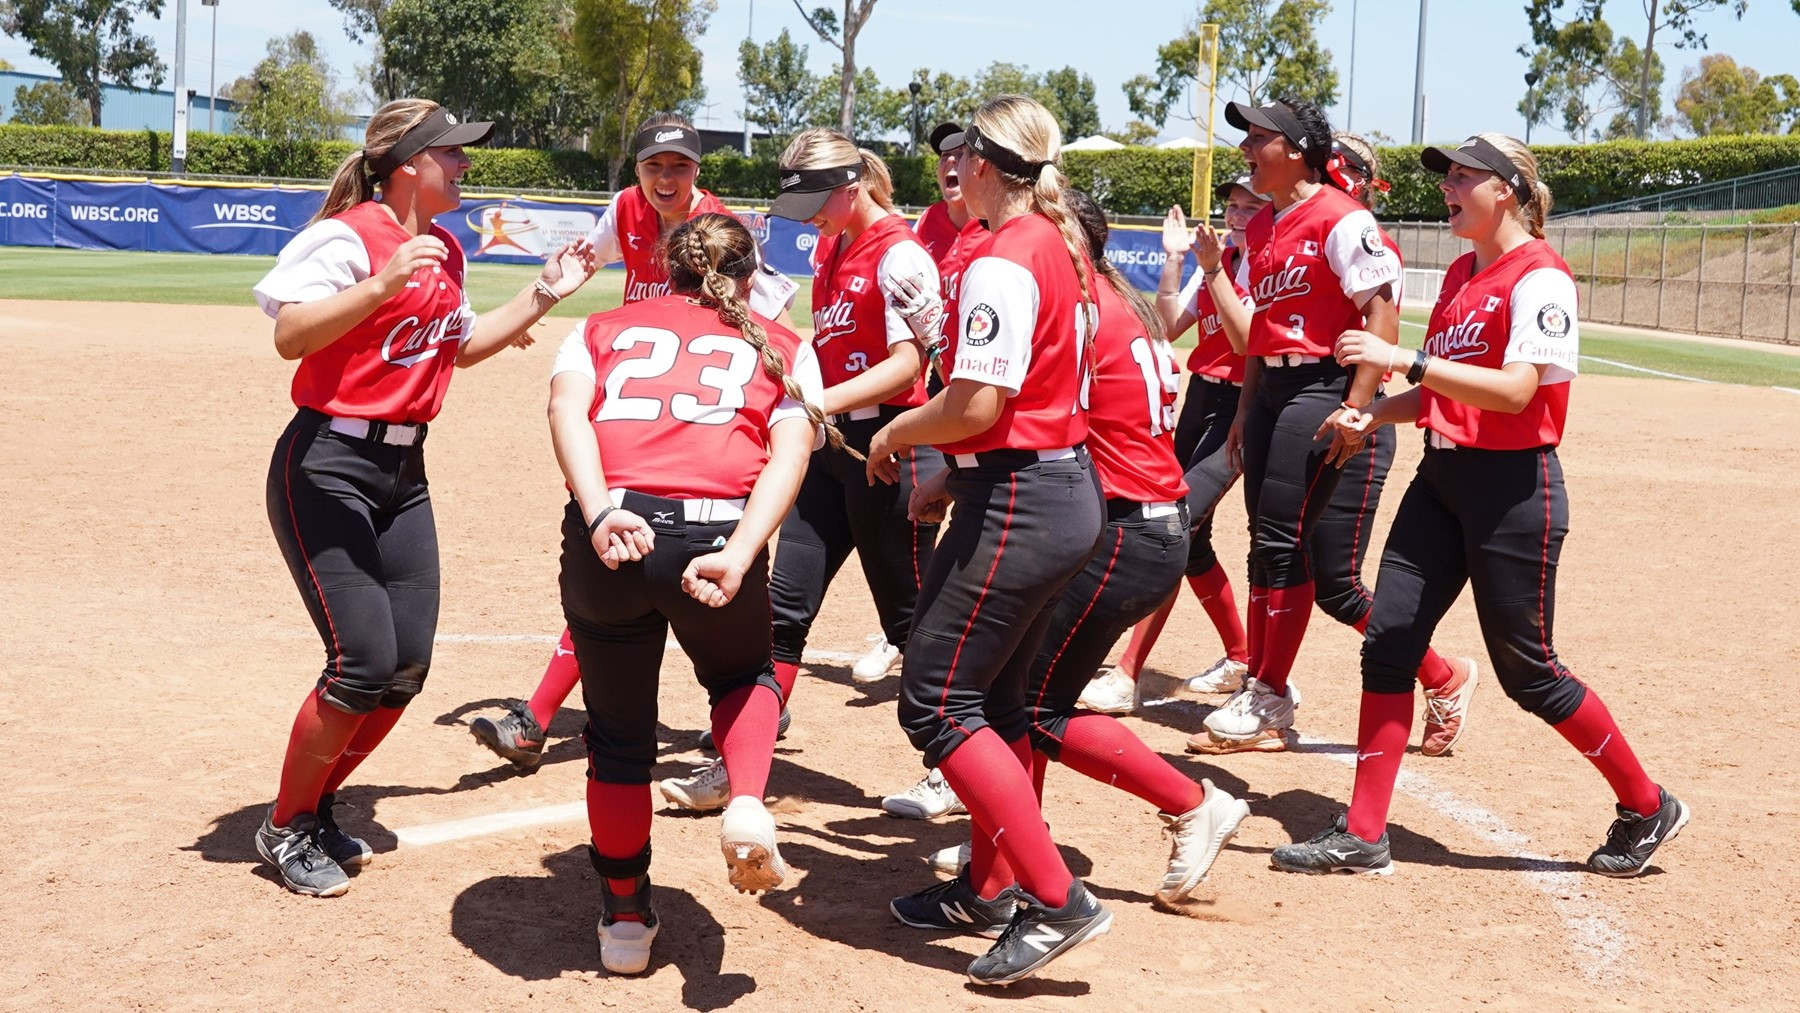 Canada could celebrate the first ever medal at the softball U-19 world level